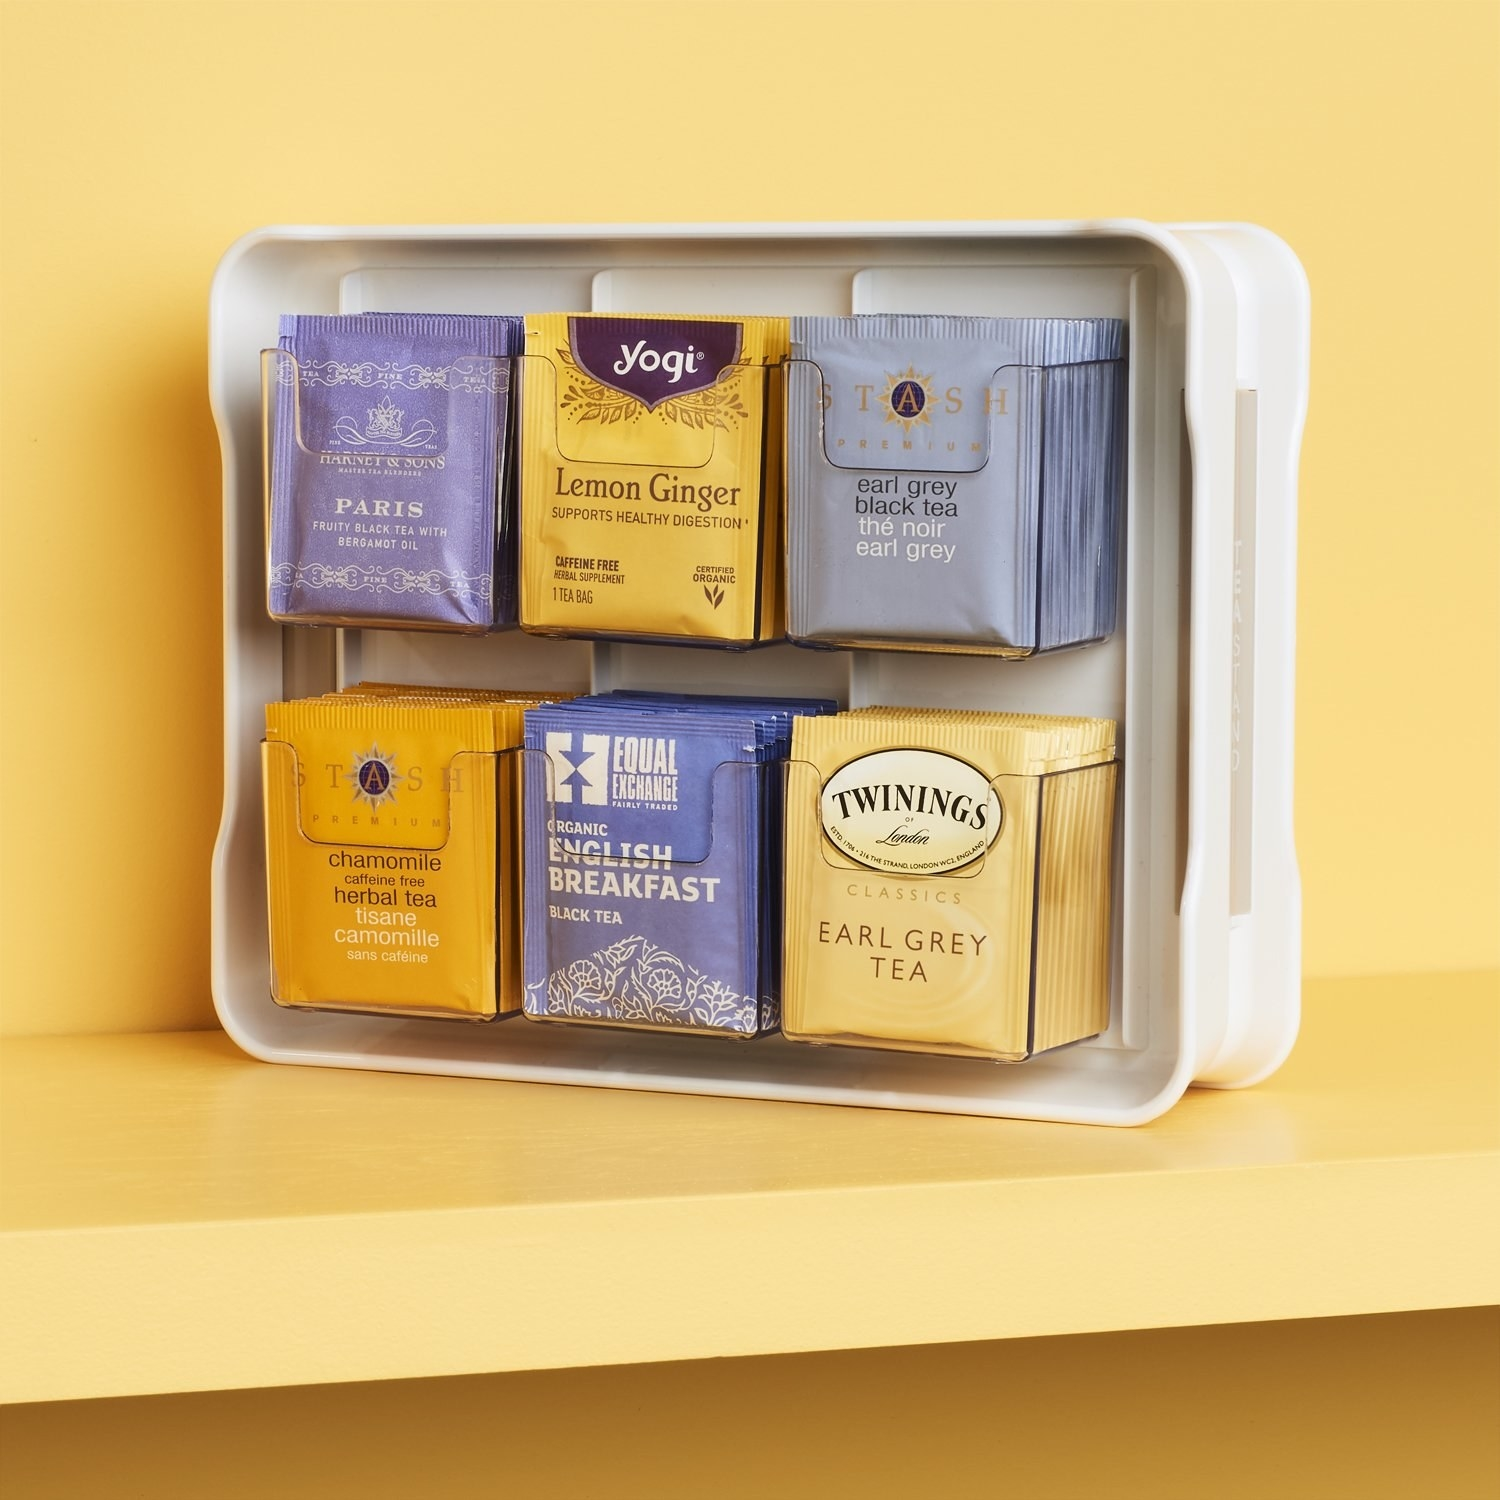 plastic organizer with six bins for tea packets